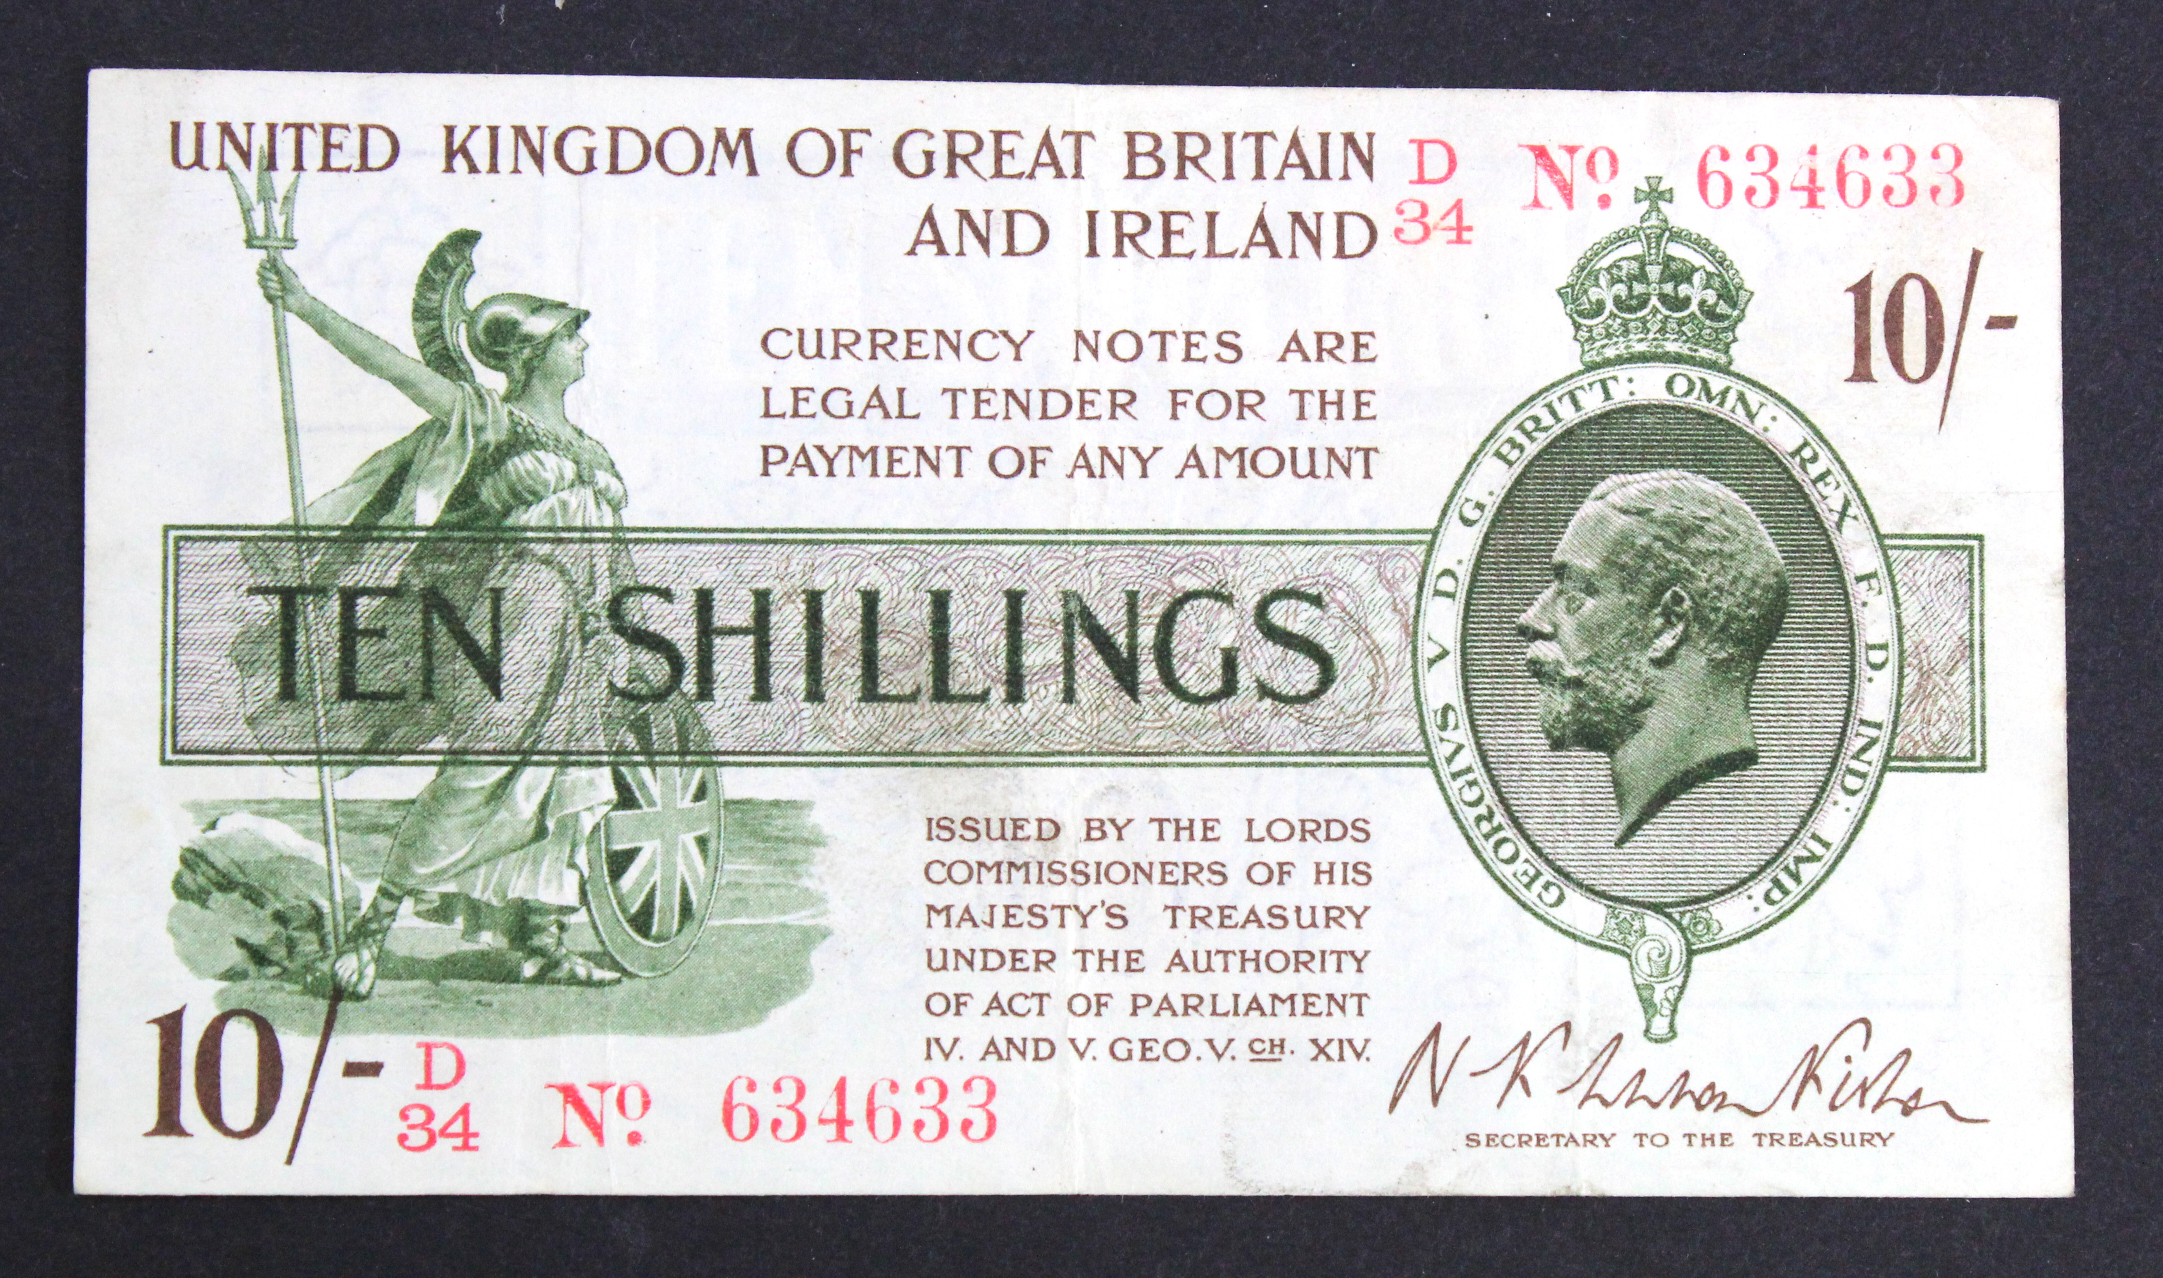 Warren Fisher 10 Shillings issued 1919, rarer FIRST SERIES, serial D/34 634633, No. with dot (T25,